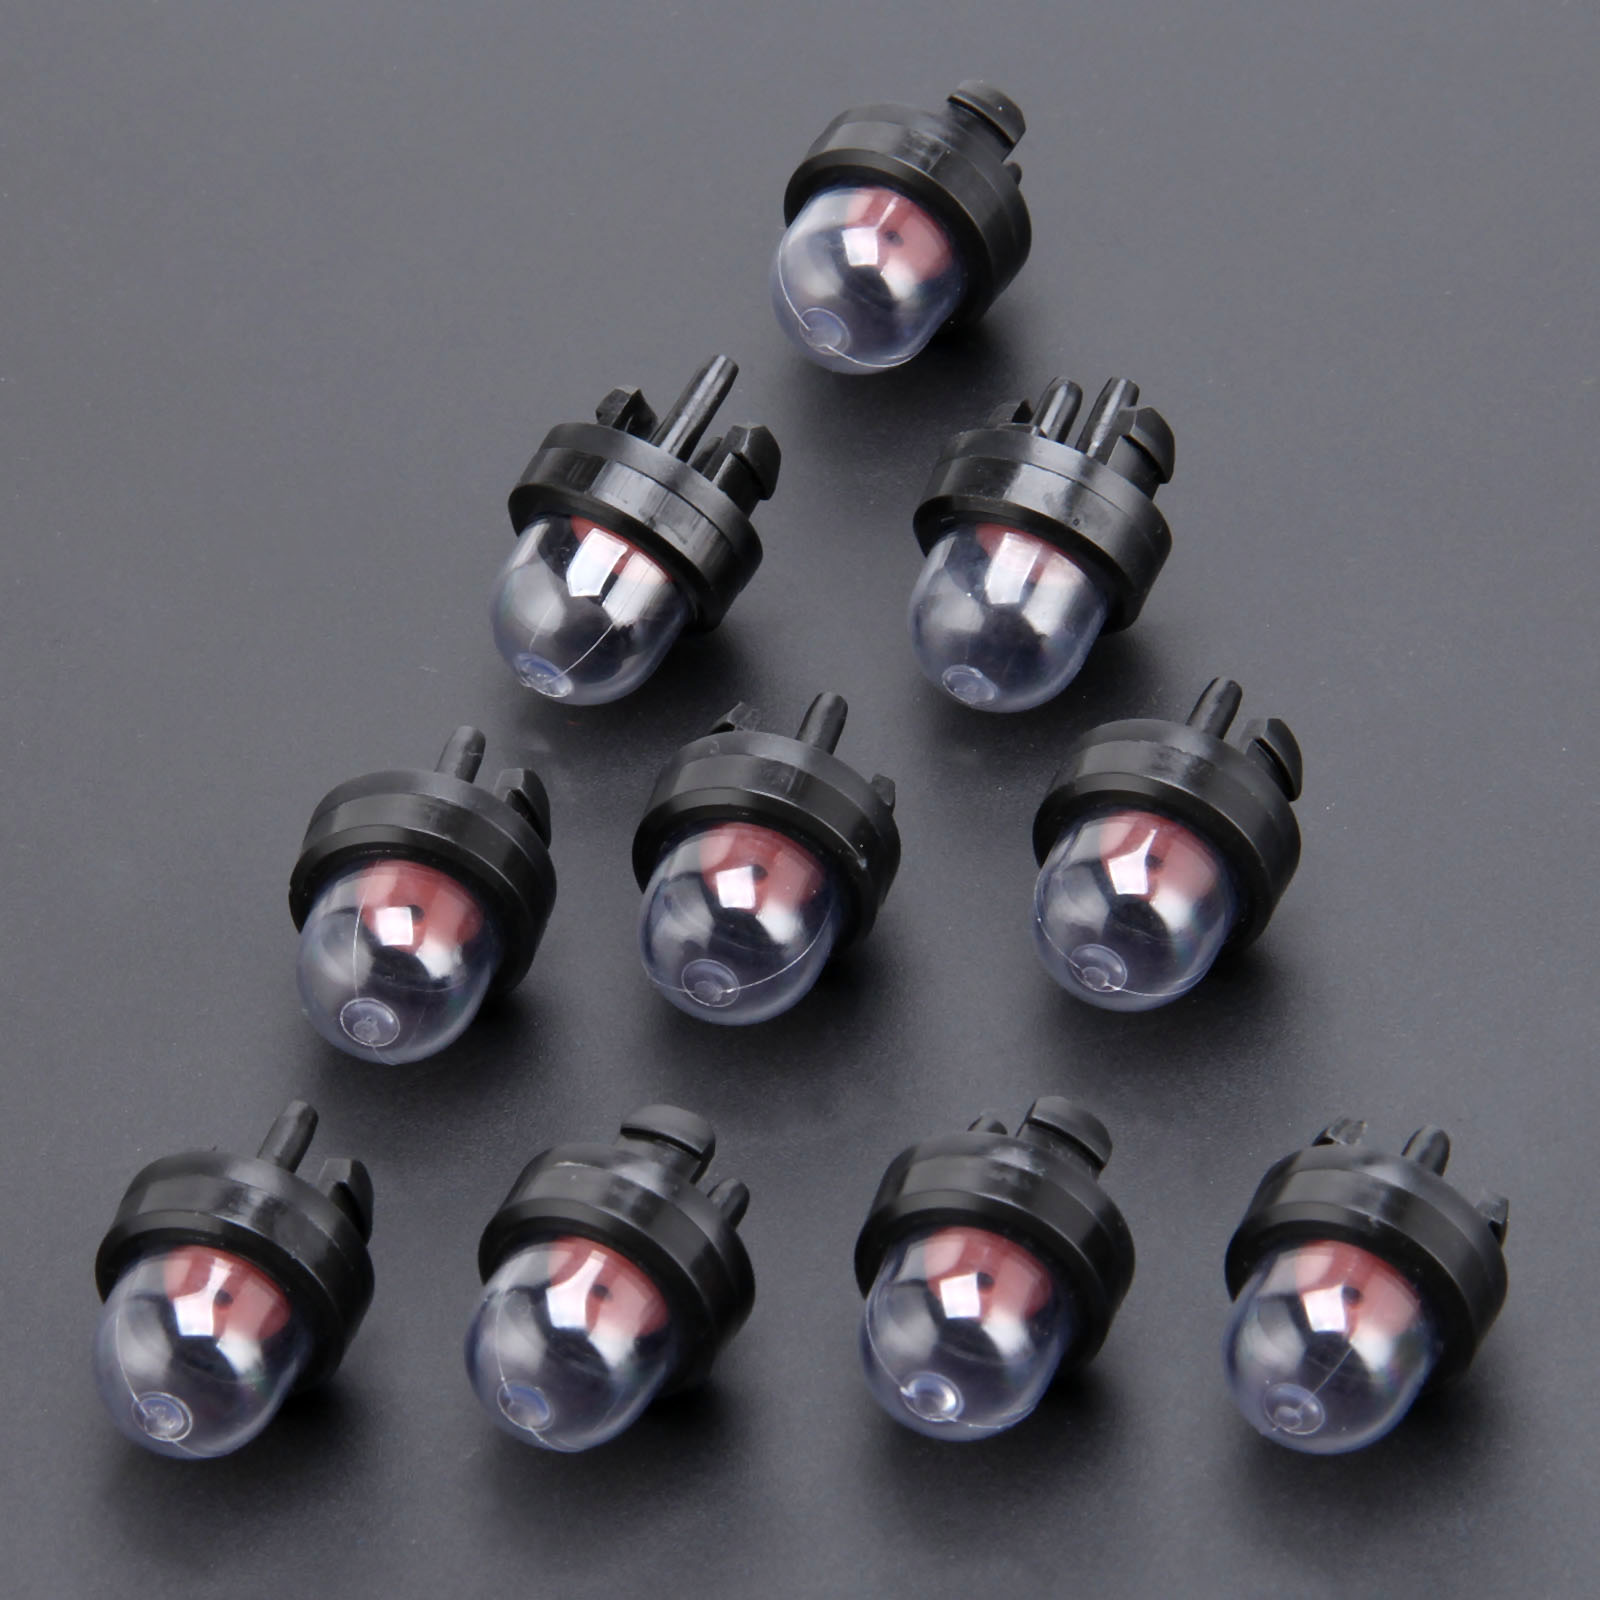 10Pcs Carburetor Snap In Primer Bulb Fuel Pump Trimmer Parts For STHIL Homeliter Ryobi Poulan Fit 45cc 52cc 5200 5800 Chainsaw